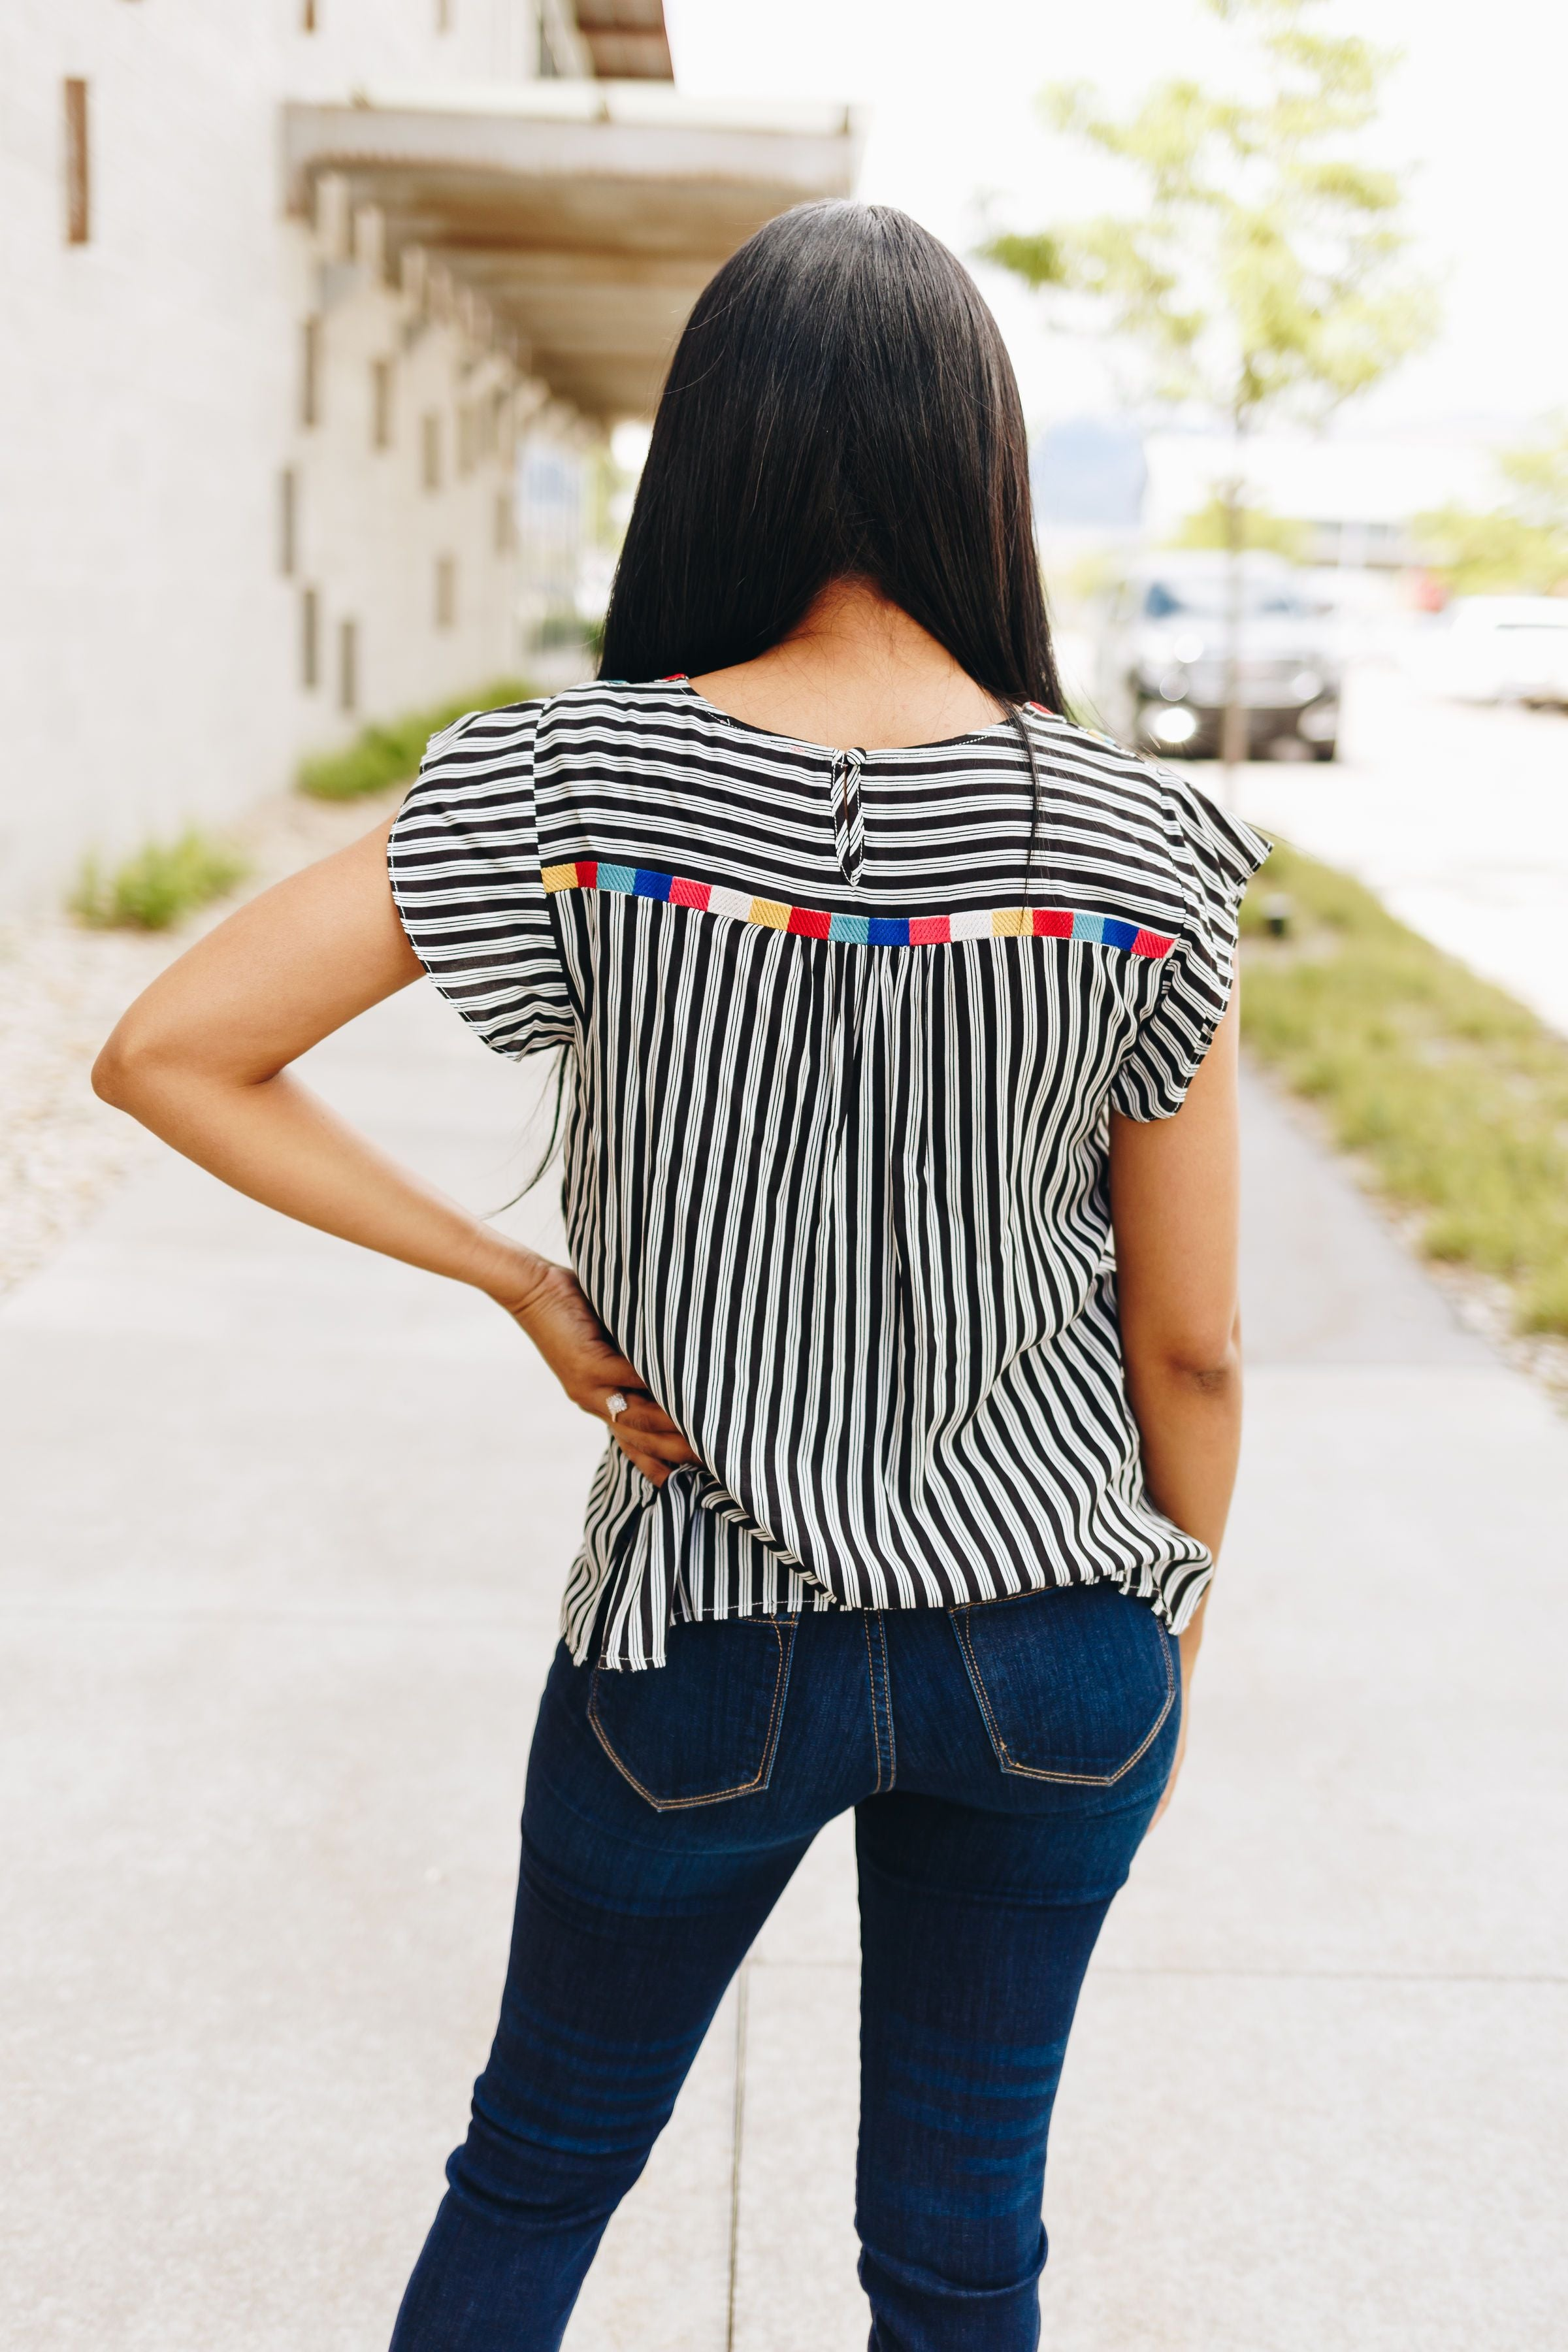 Fiesta Embroidered + Striped Blouse